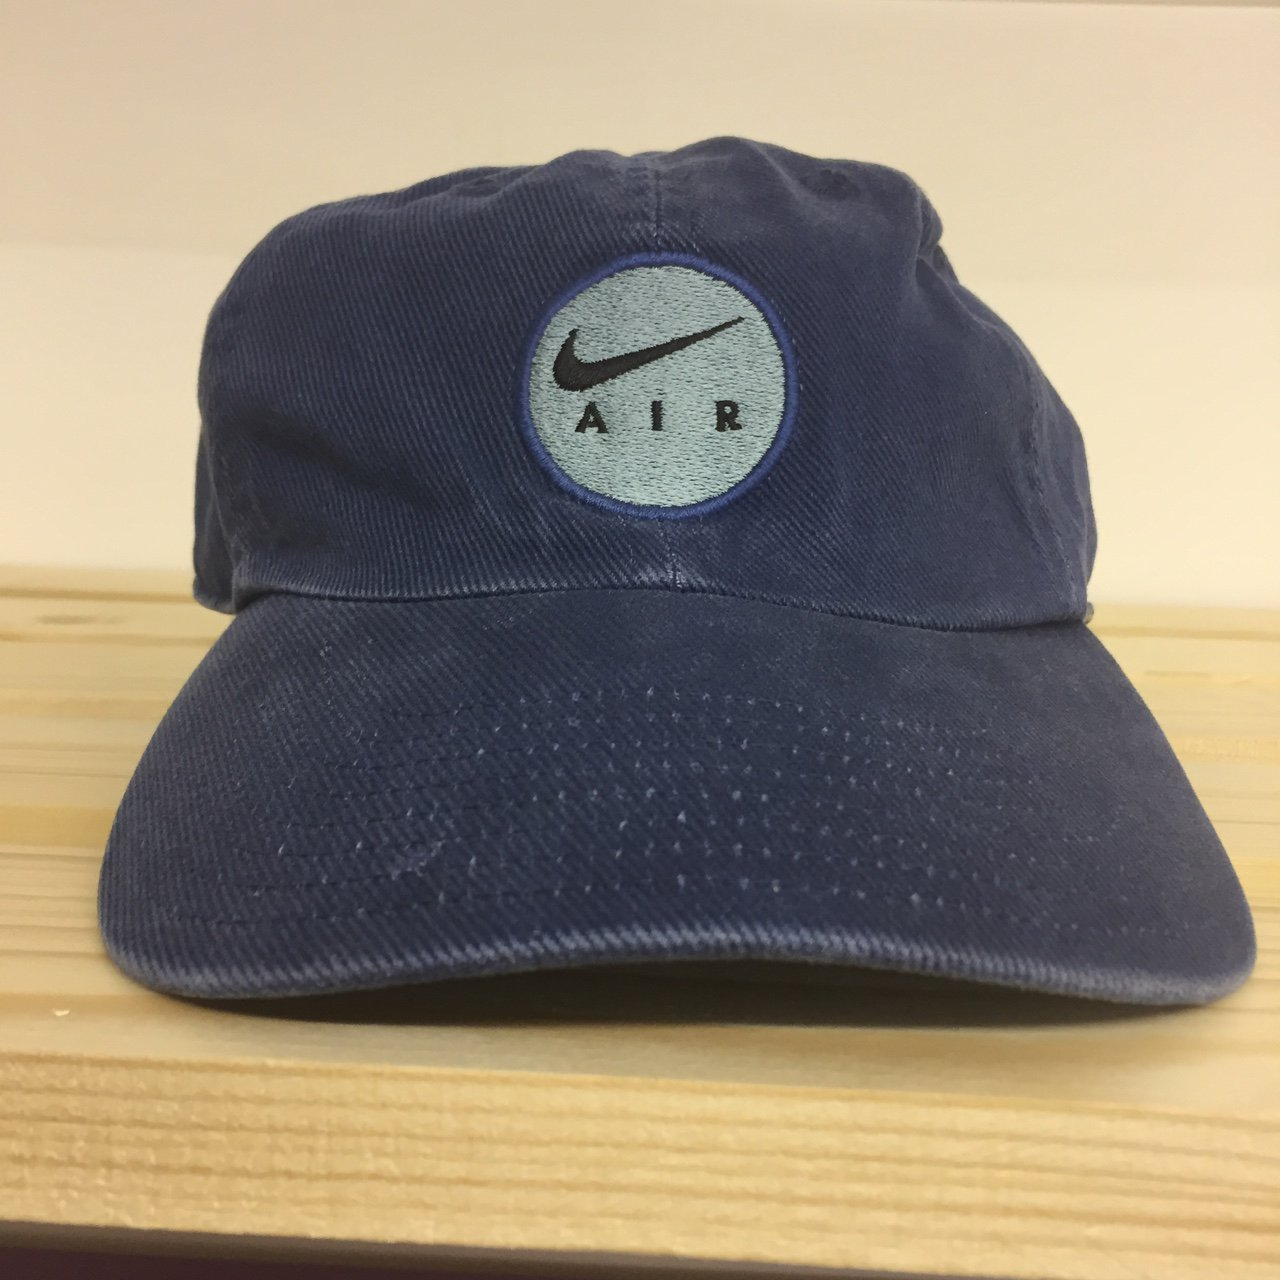 38ba0c15d93 Vintage Nike Air cap    Navy blue    Corduroy with logo on - Depop